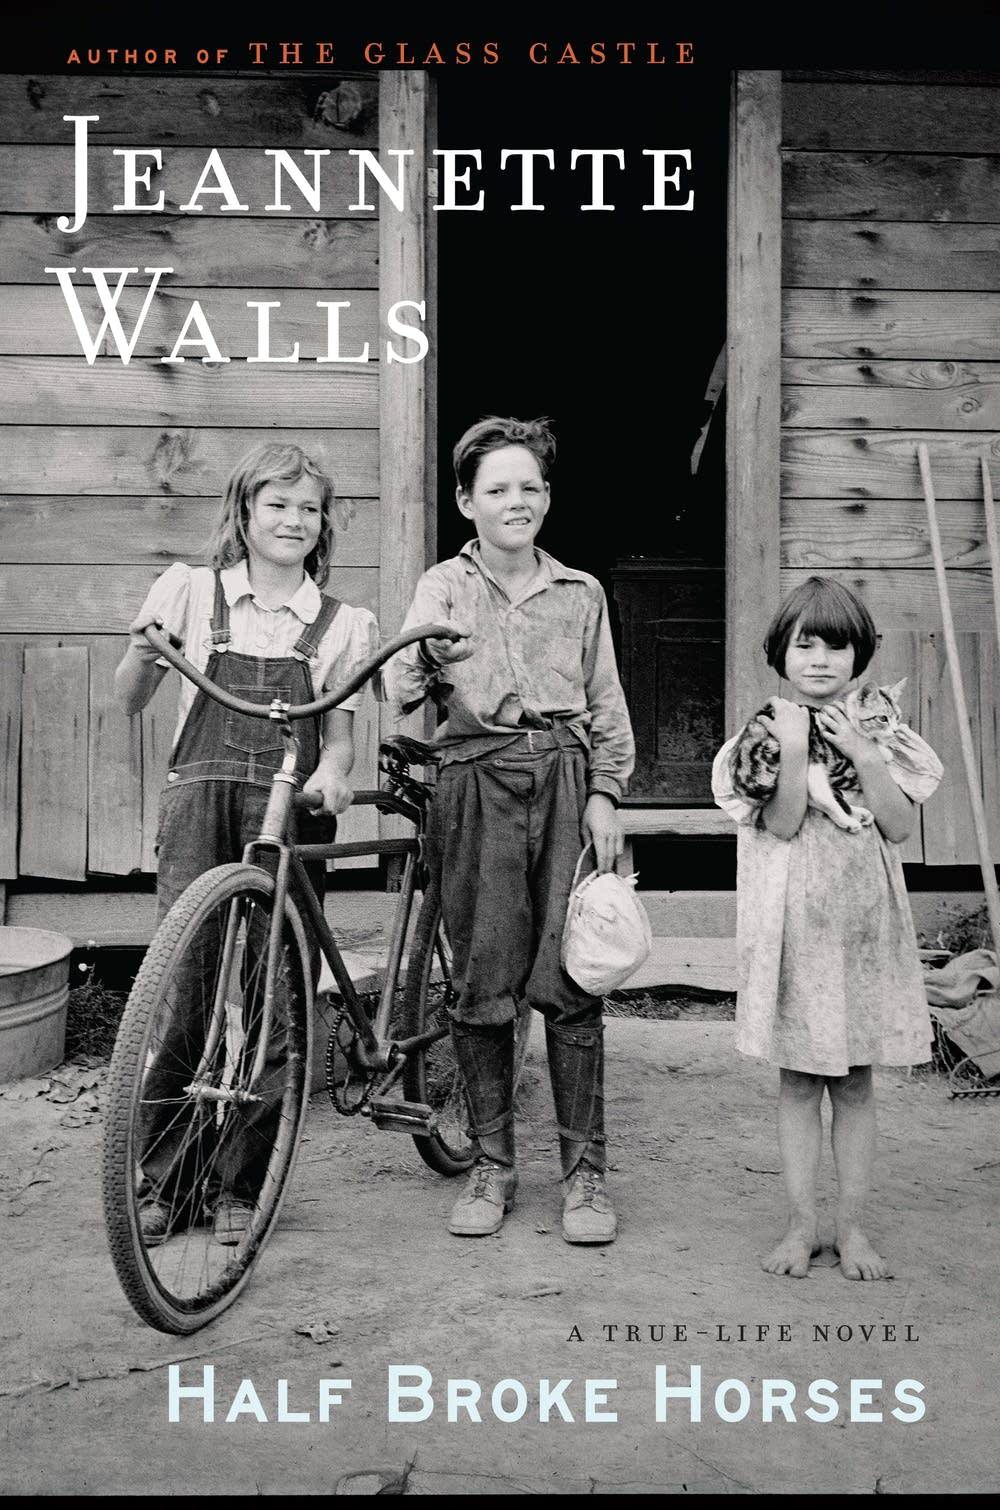 Walls' latest novel